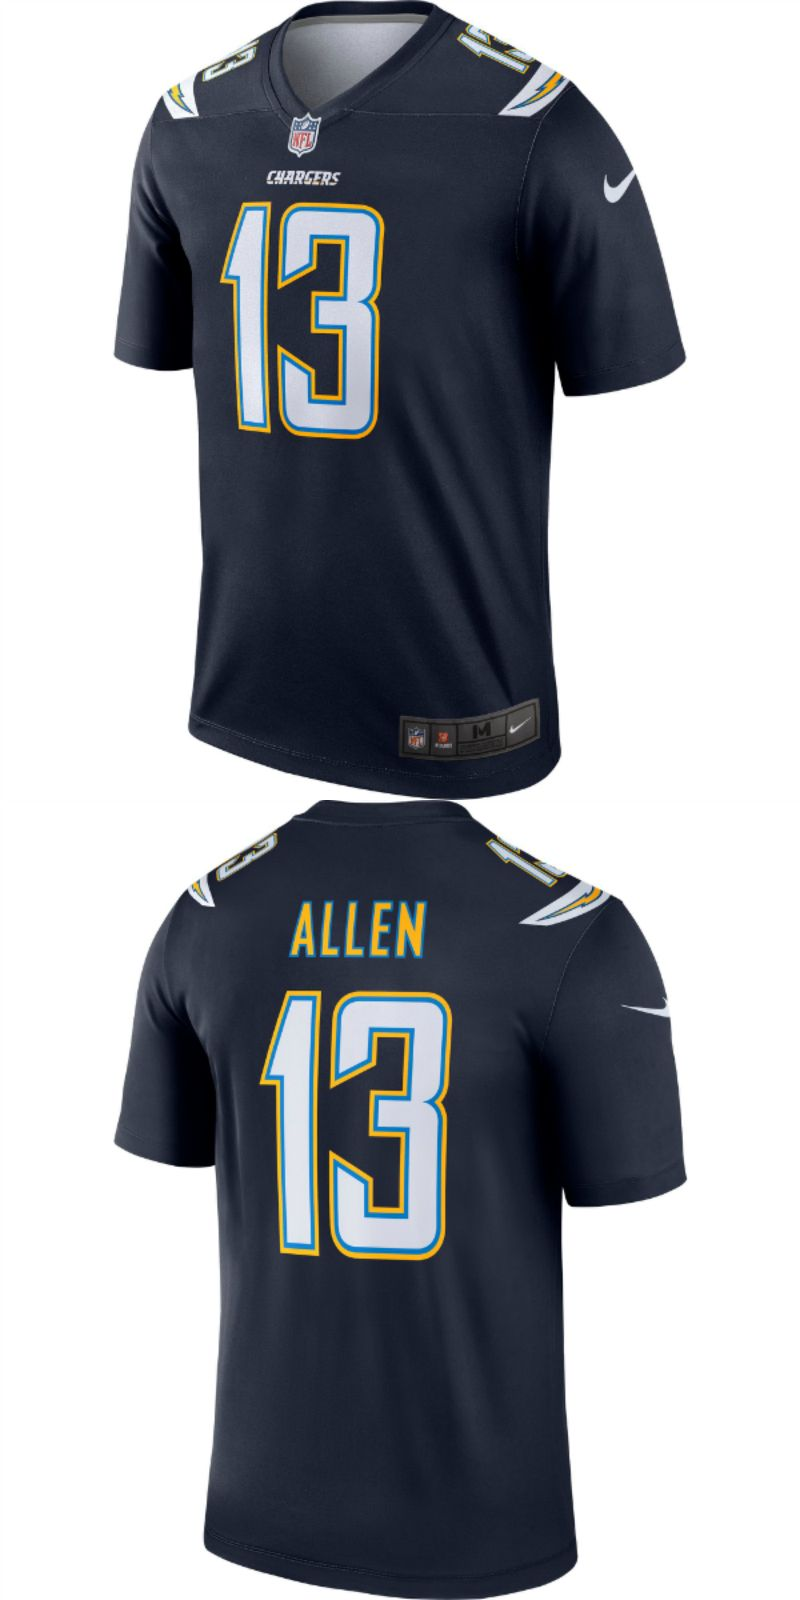 brand new 6d4d1 d610b mens Los Angeles Chargers custom football Game jersey | NFL ...